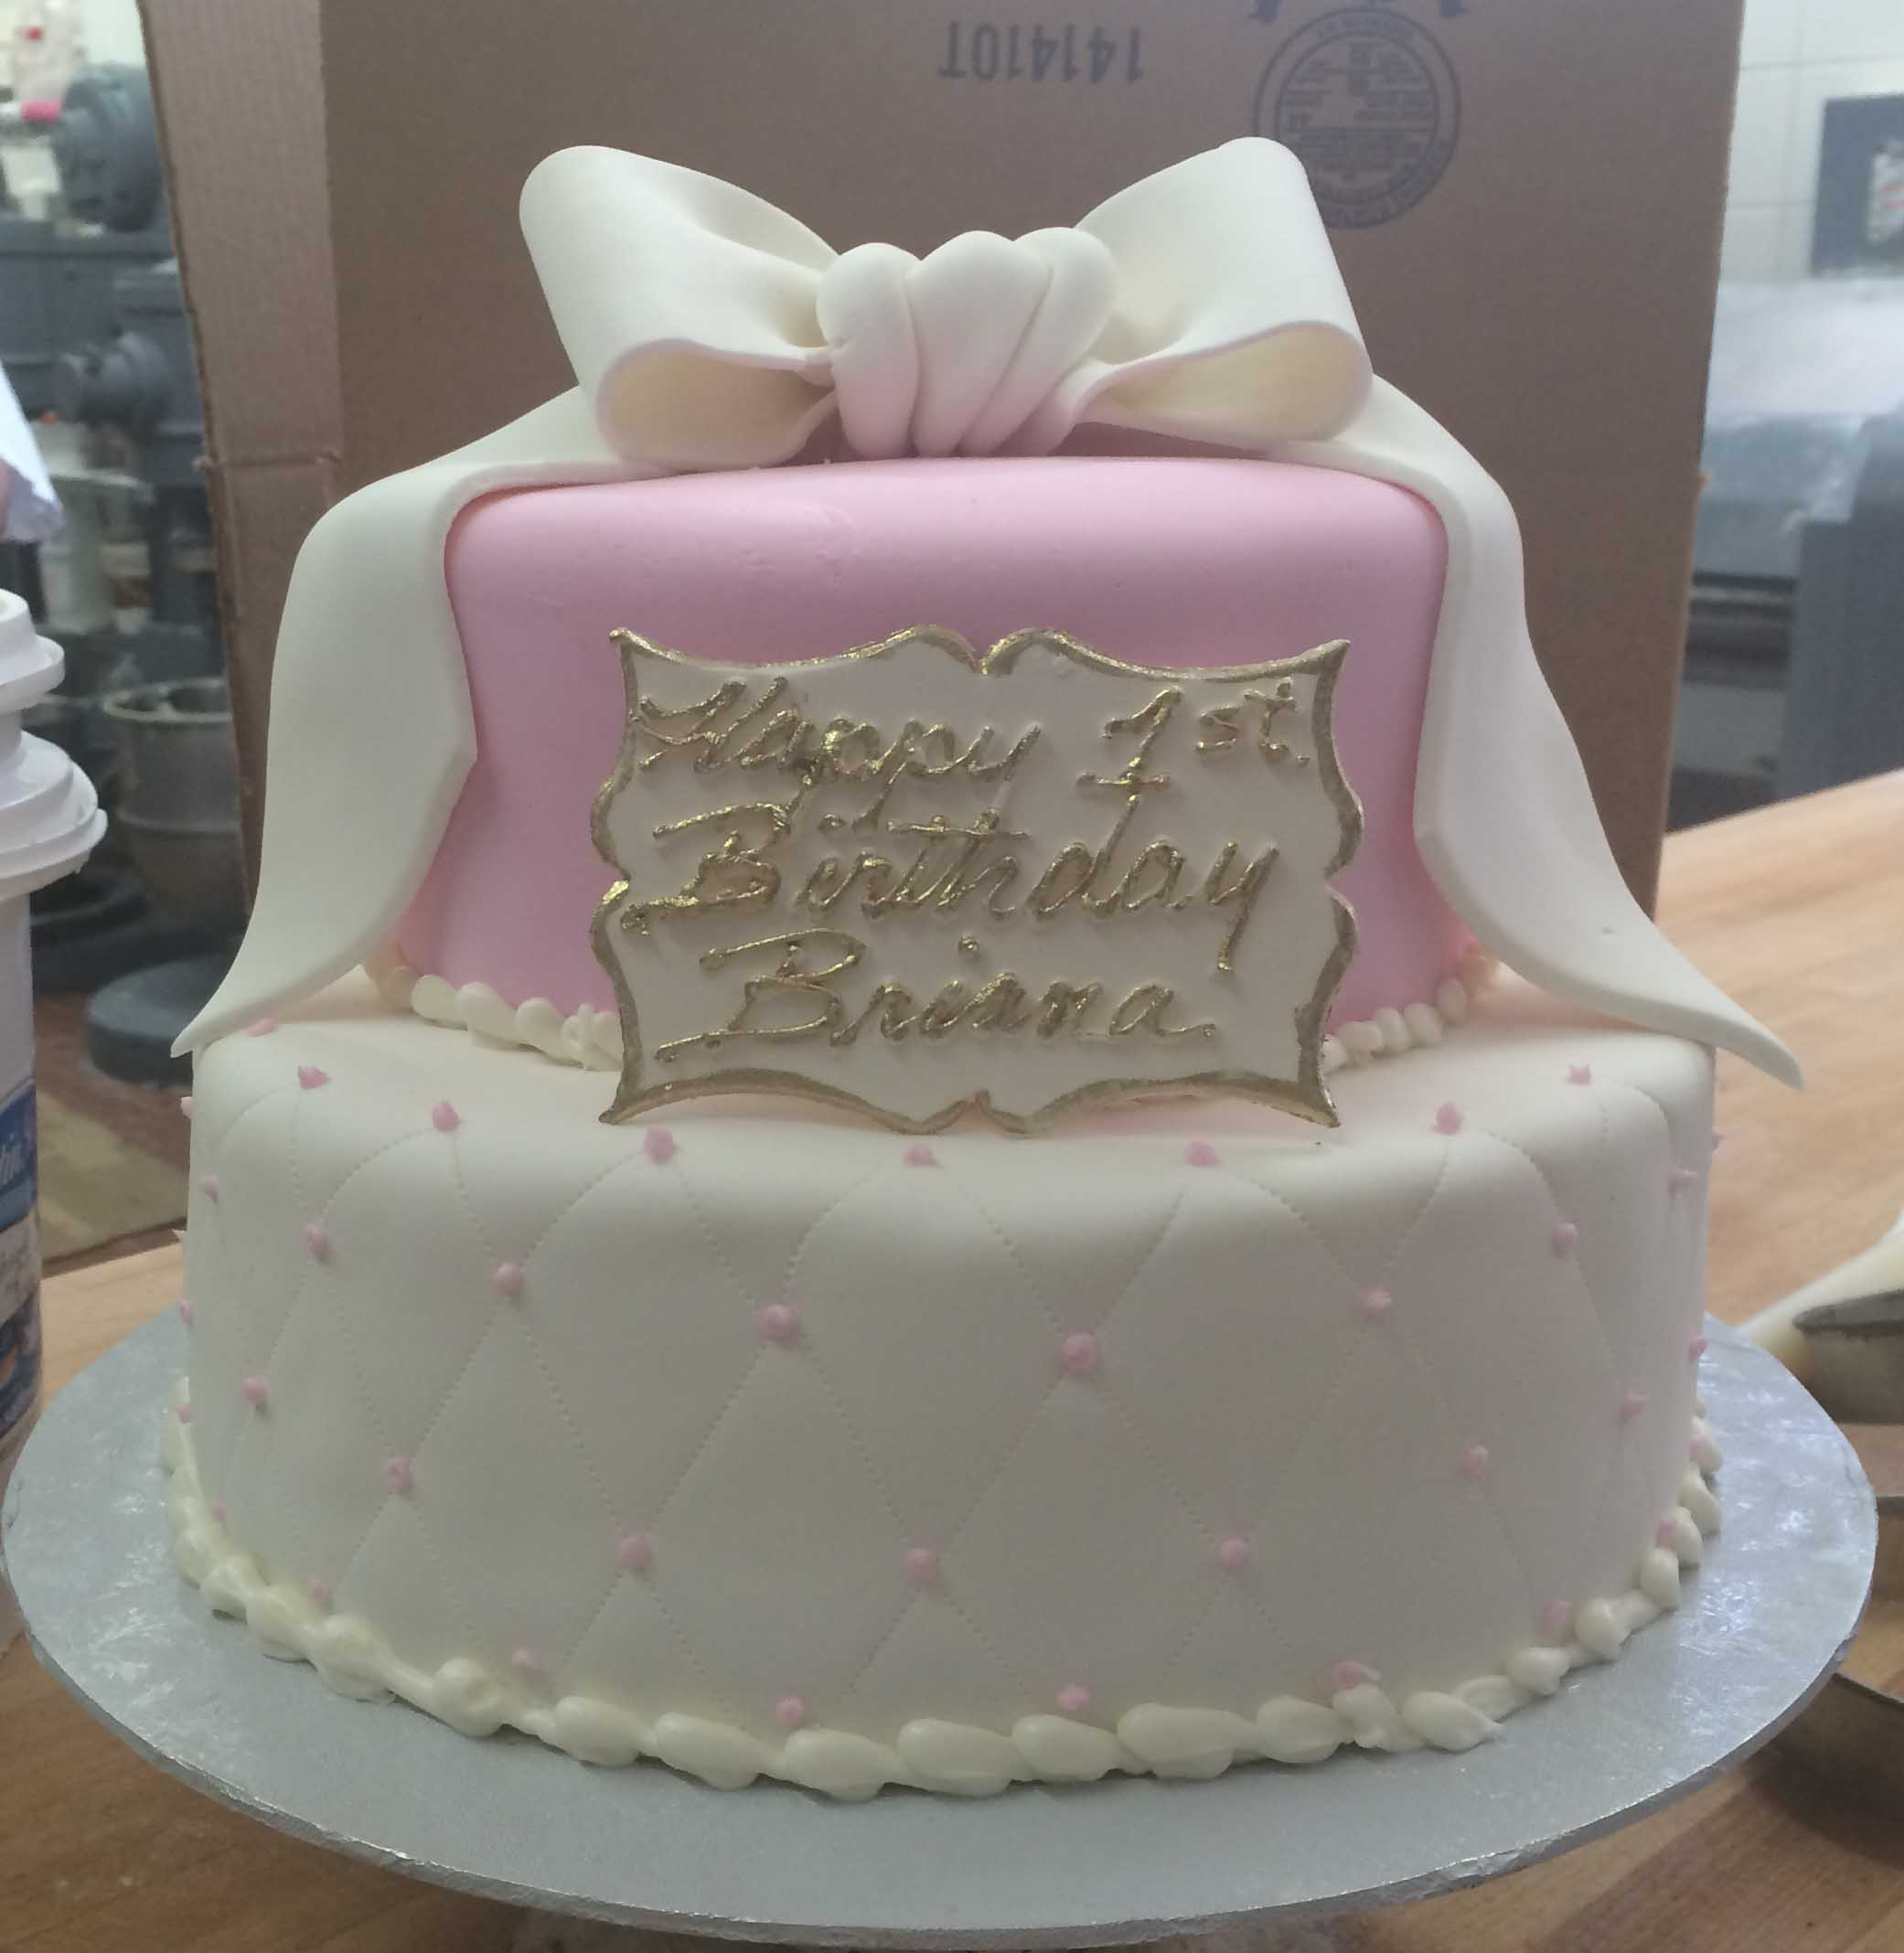 White Rolled Fondant Quilted with Pink. Medium Pink Rolled Fondant. White Fondant Bow.jpg